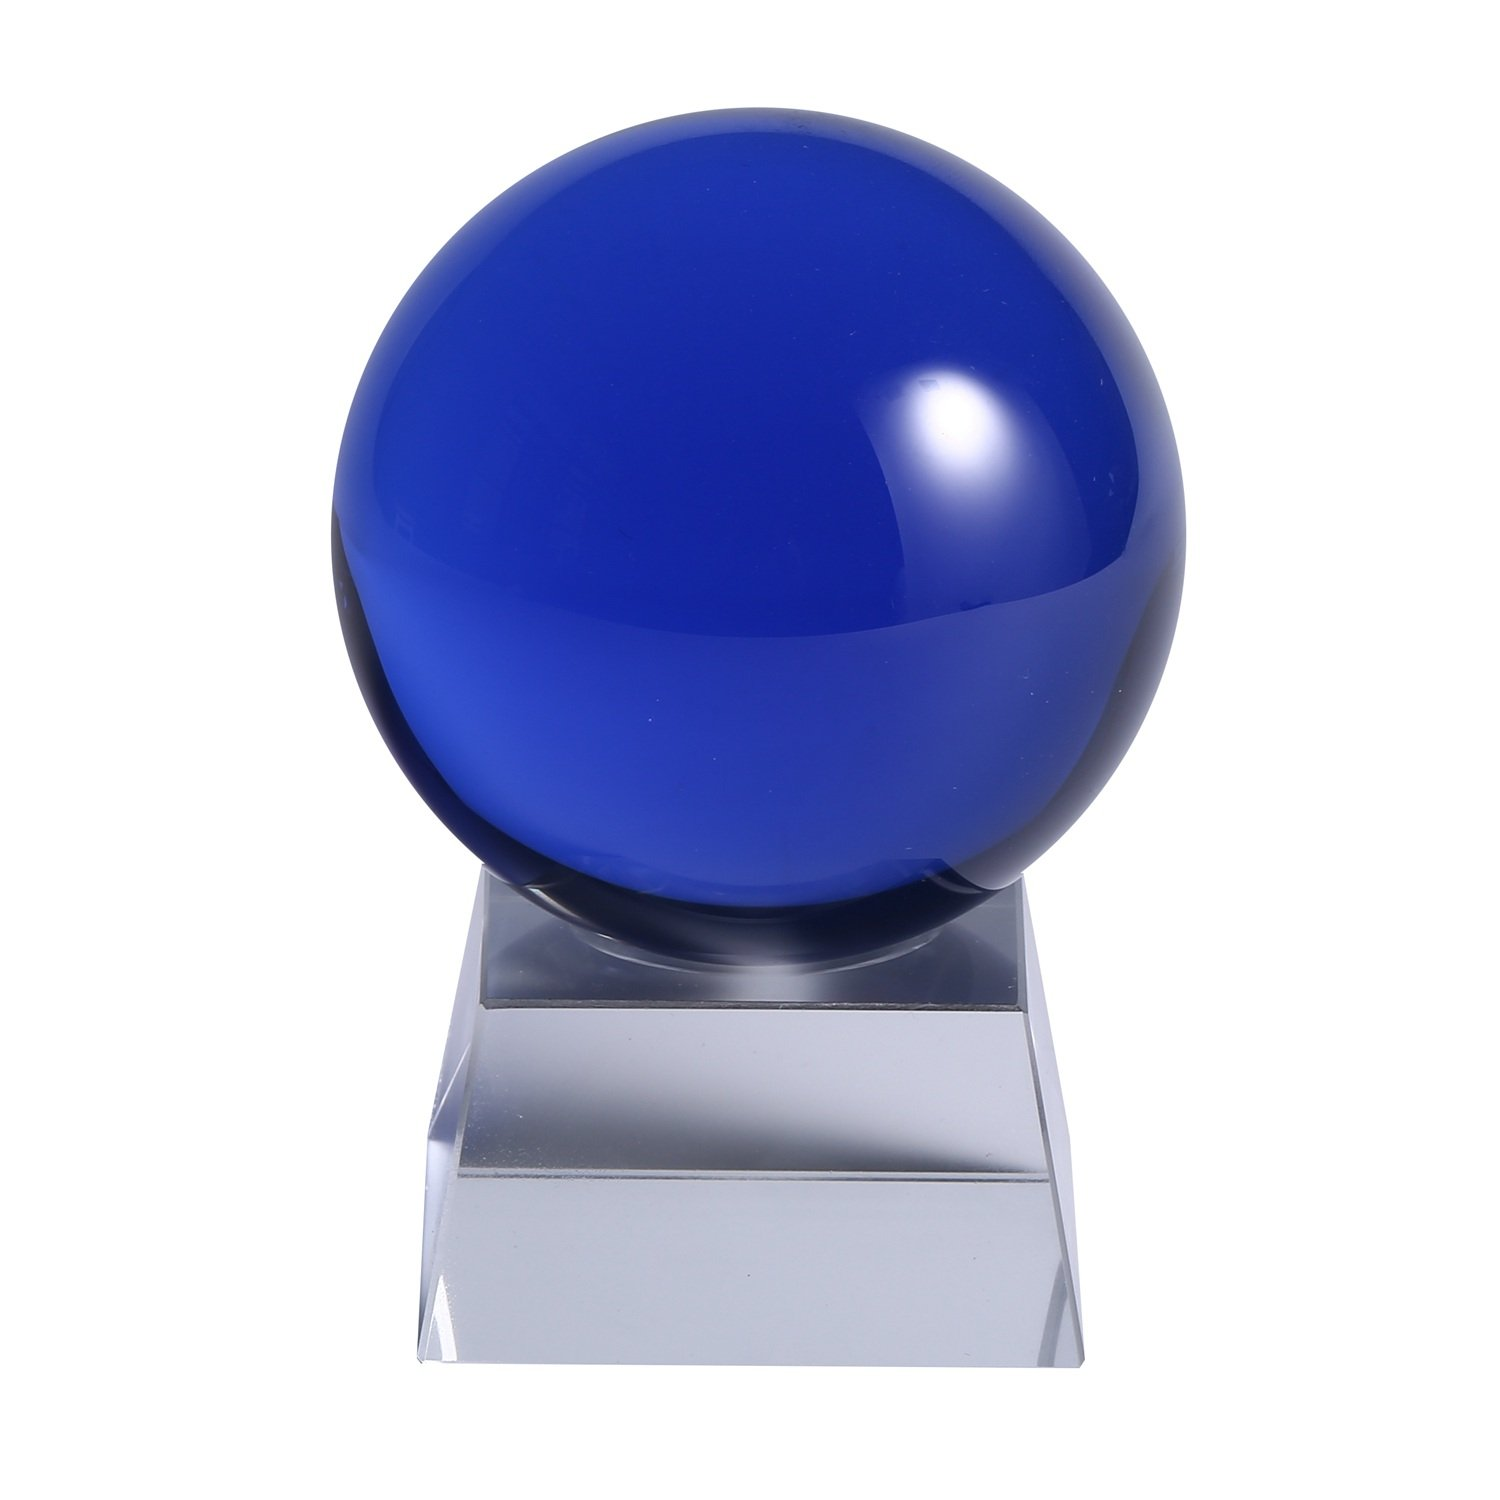 YOCTOSUN Crystal Blue Crystal Ball 3.15 inch (80mm) Crystal Sphere Ball with Free Crystal Stand